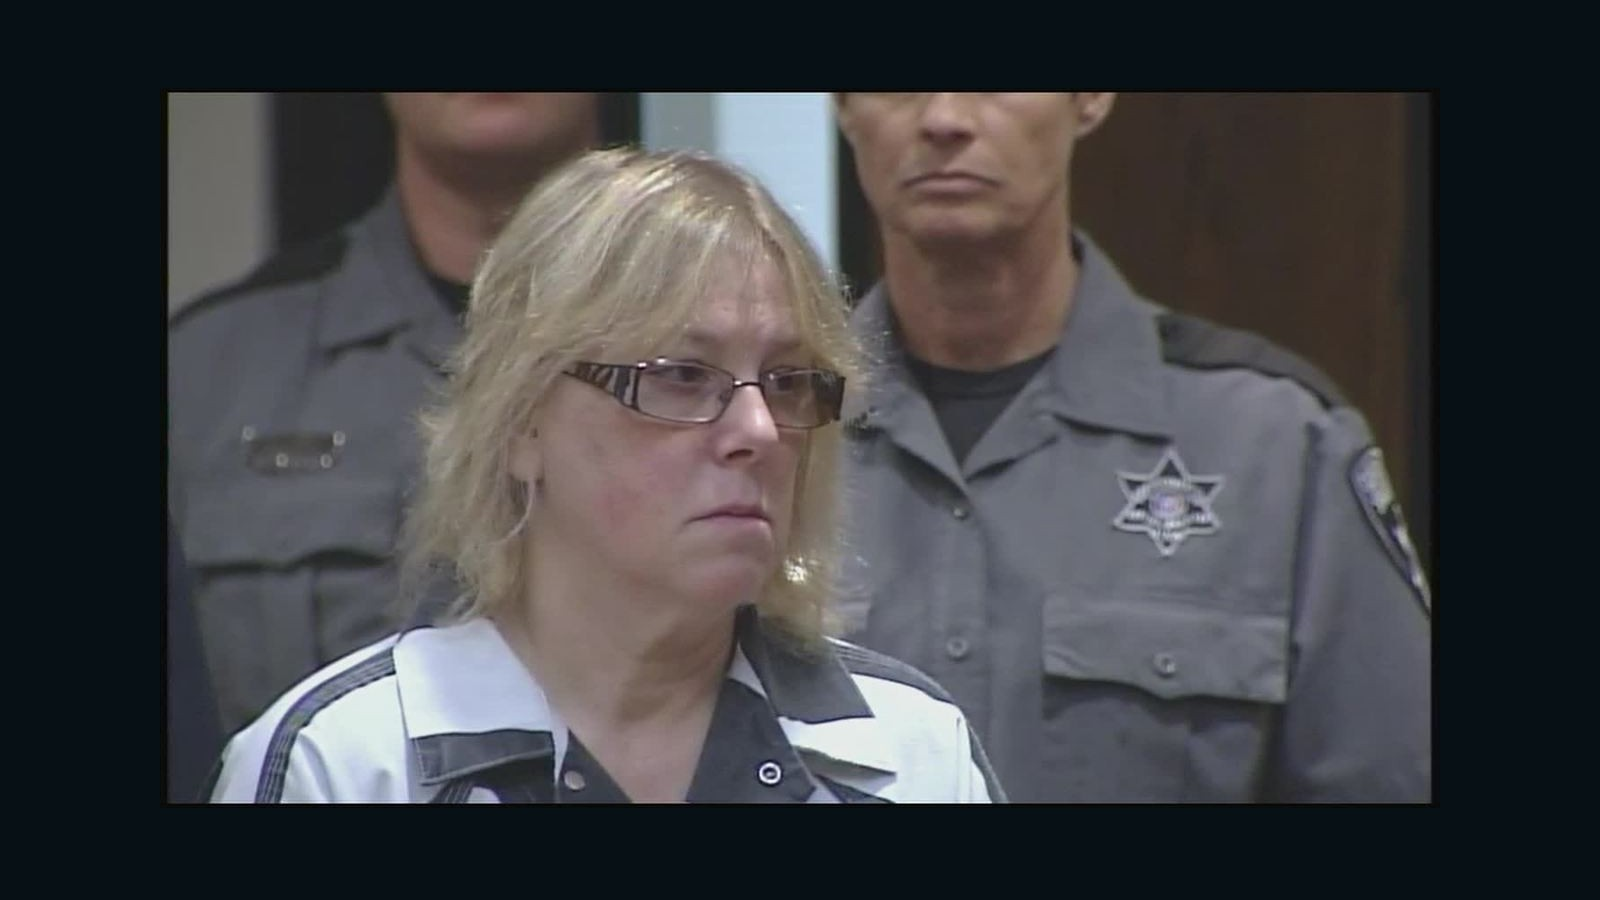 Joyce Mitchell pleads guilty to helping inmates escape - CNN